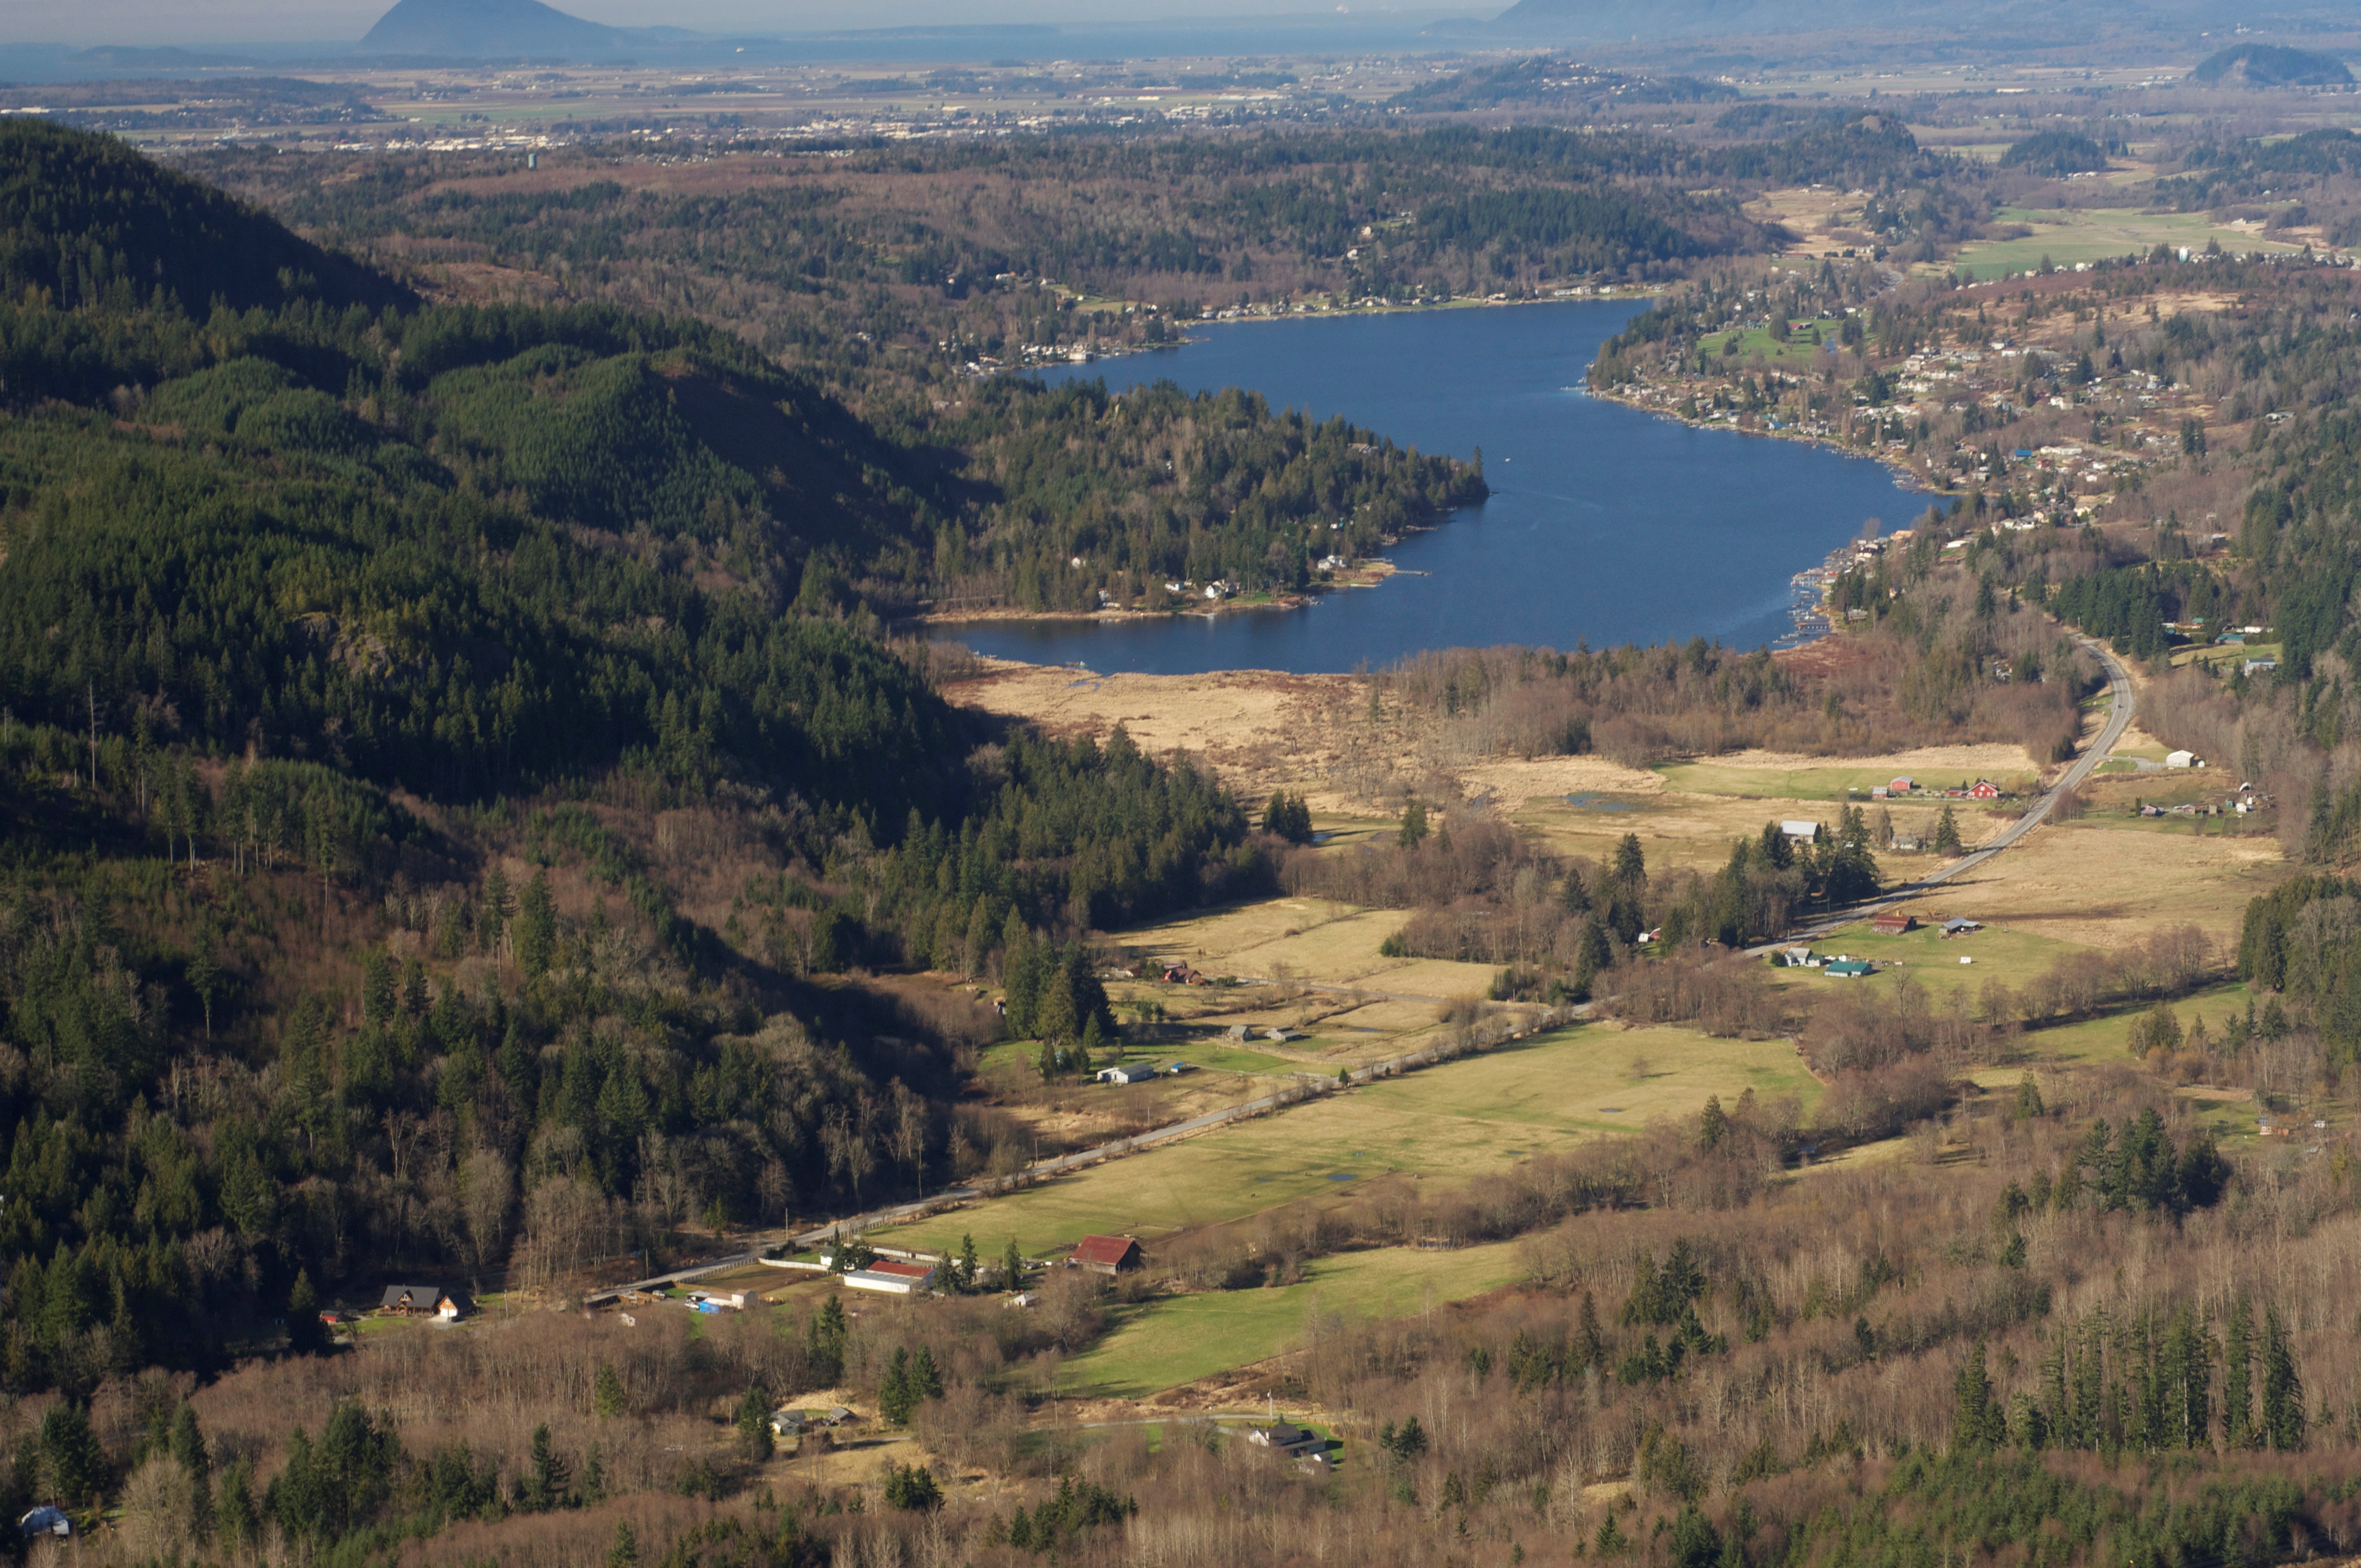 Aerial photograph of Big Lake. Photograph by Chris Farrow.